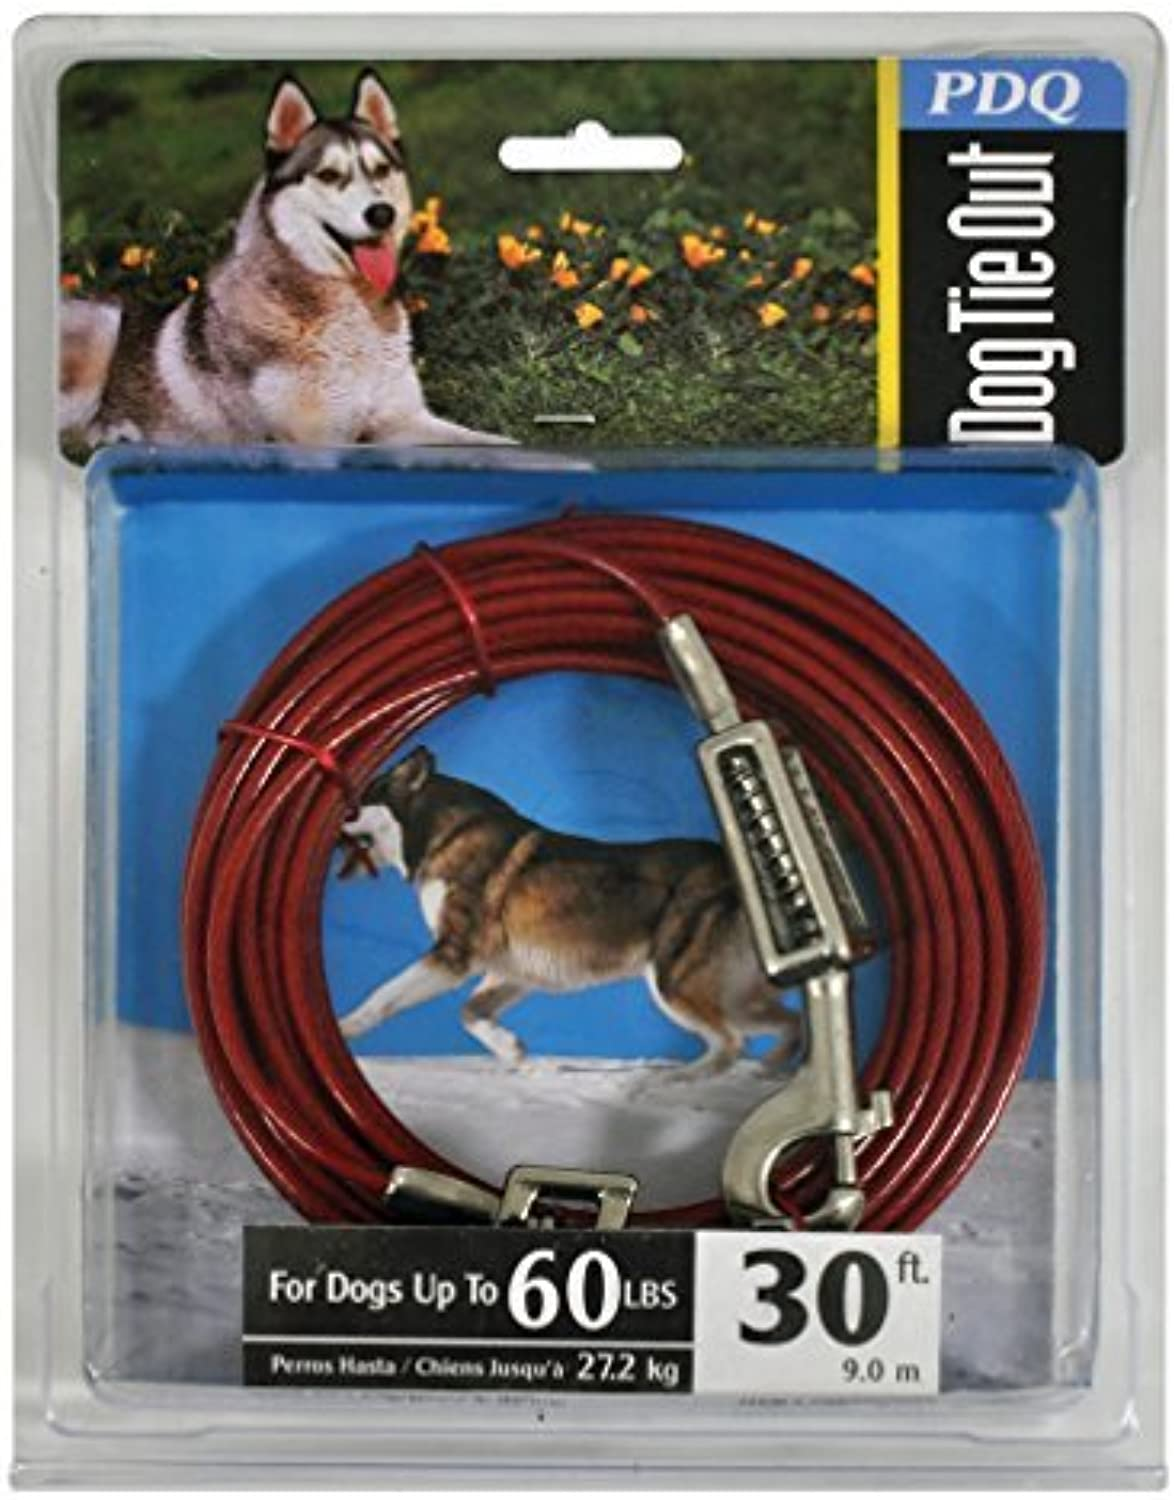 Boss Pet Products Q3530 SPG 99 Cable Dog Tie Out 30 Large by Boss Pet Products